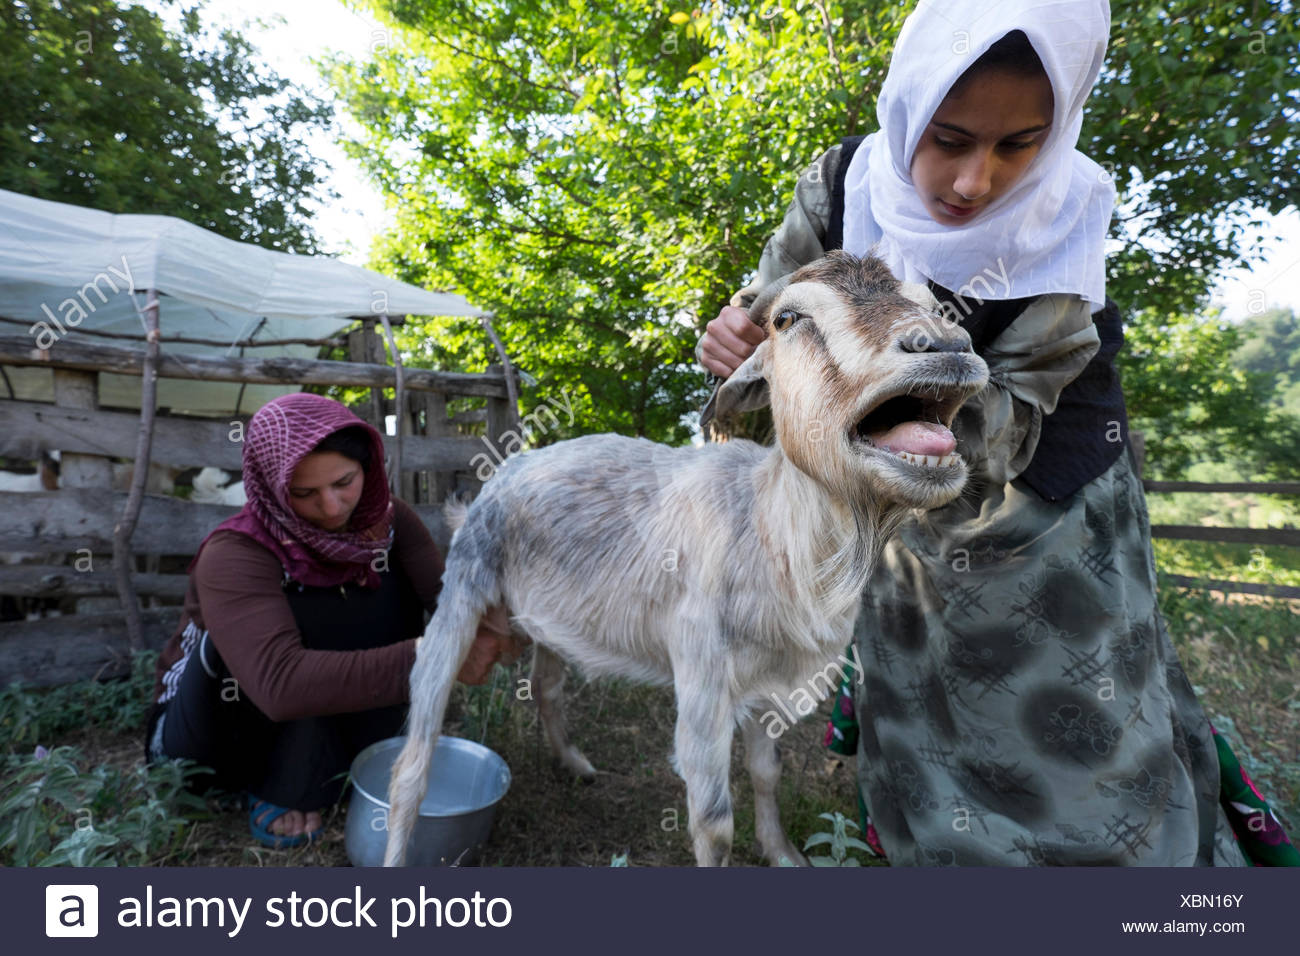 Two young women milk a bleating goat in the farmyard of their family home. - Stock Image